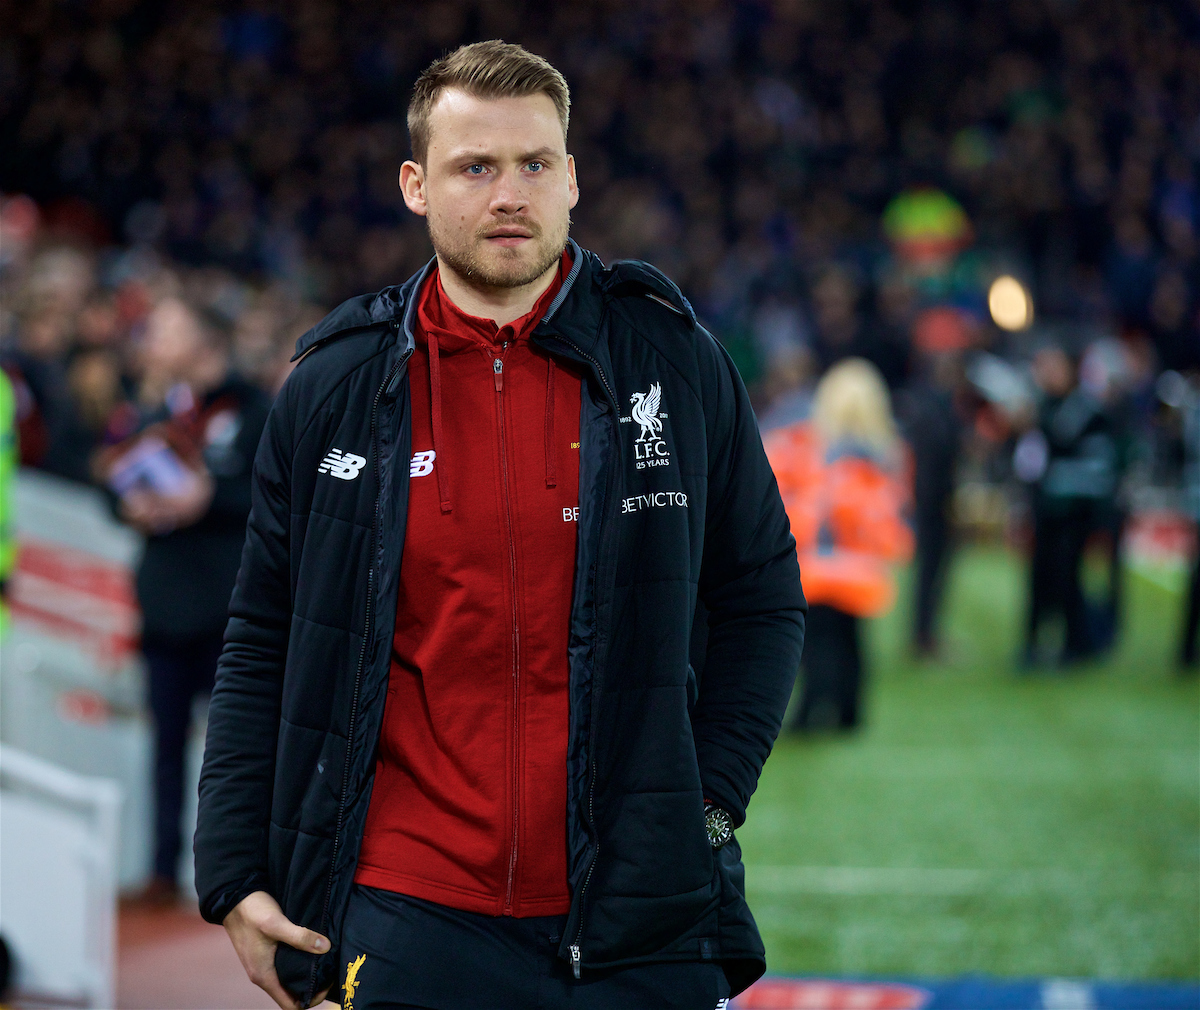 LIVERPOOL, ENGLAND - Friday, January 5, 2018: Liverpool's unused goalkeeper Simon Mignolet before the FA Cup 3rd Round match between Liverpool FC and Everton FC, the 230th Merseyside Derby, at Anfield. (Pic by David Rawcliffe/Propaganda)